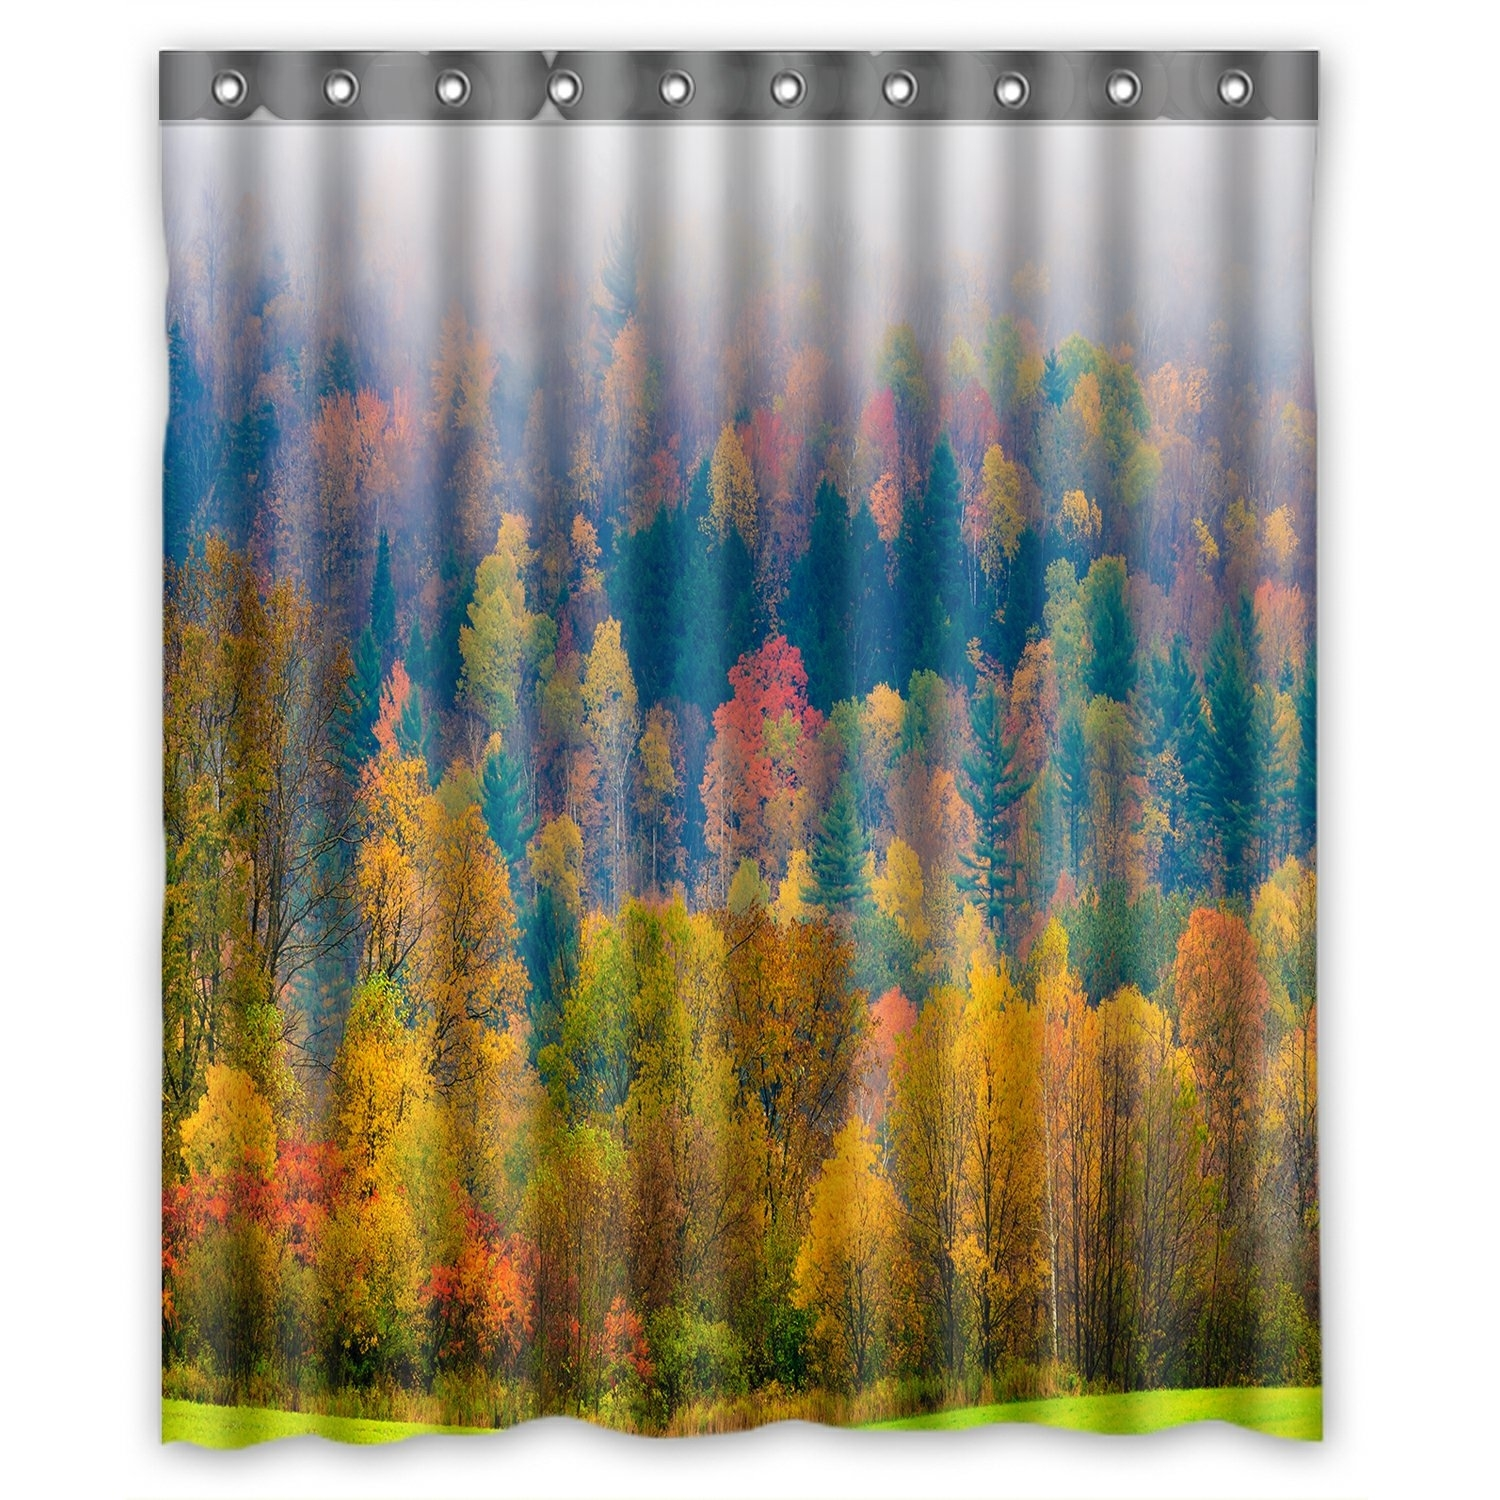 Forest Landscape Shower Curtain, Field of Trees during Fall Foliage Shower Curtain 60x72 inch